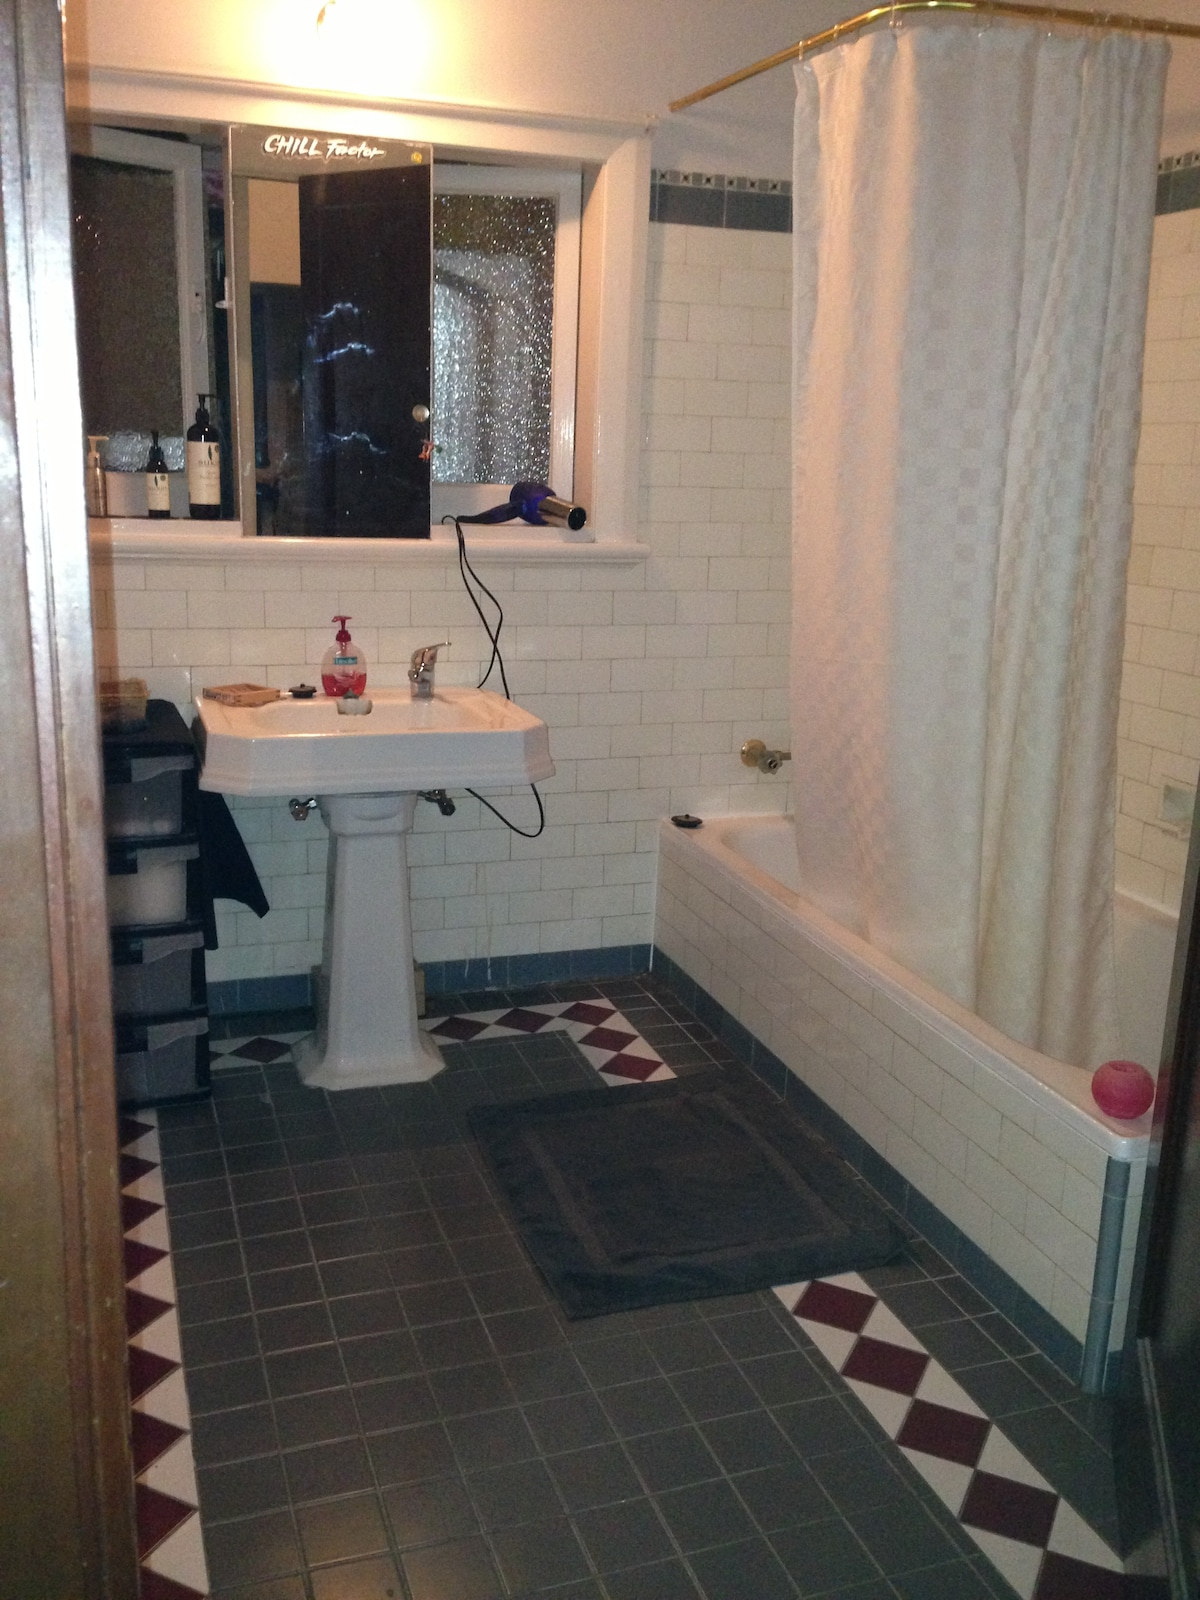 Your own bathroom - complete with Shower, toilet and bath